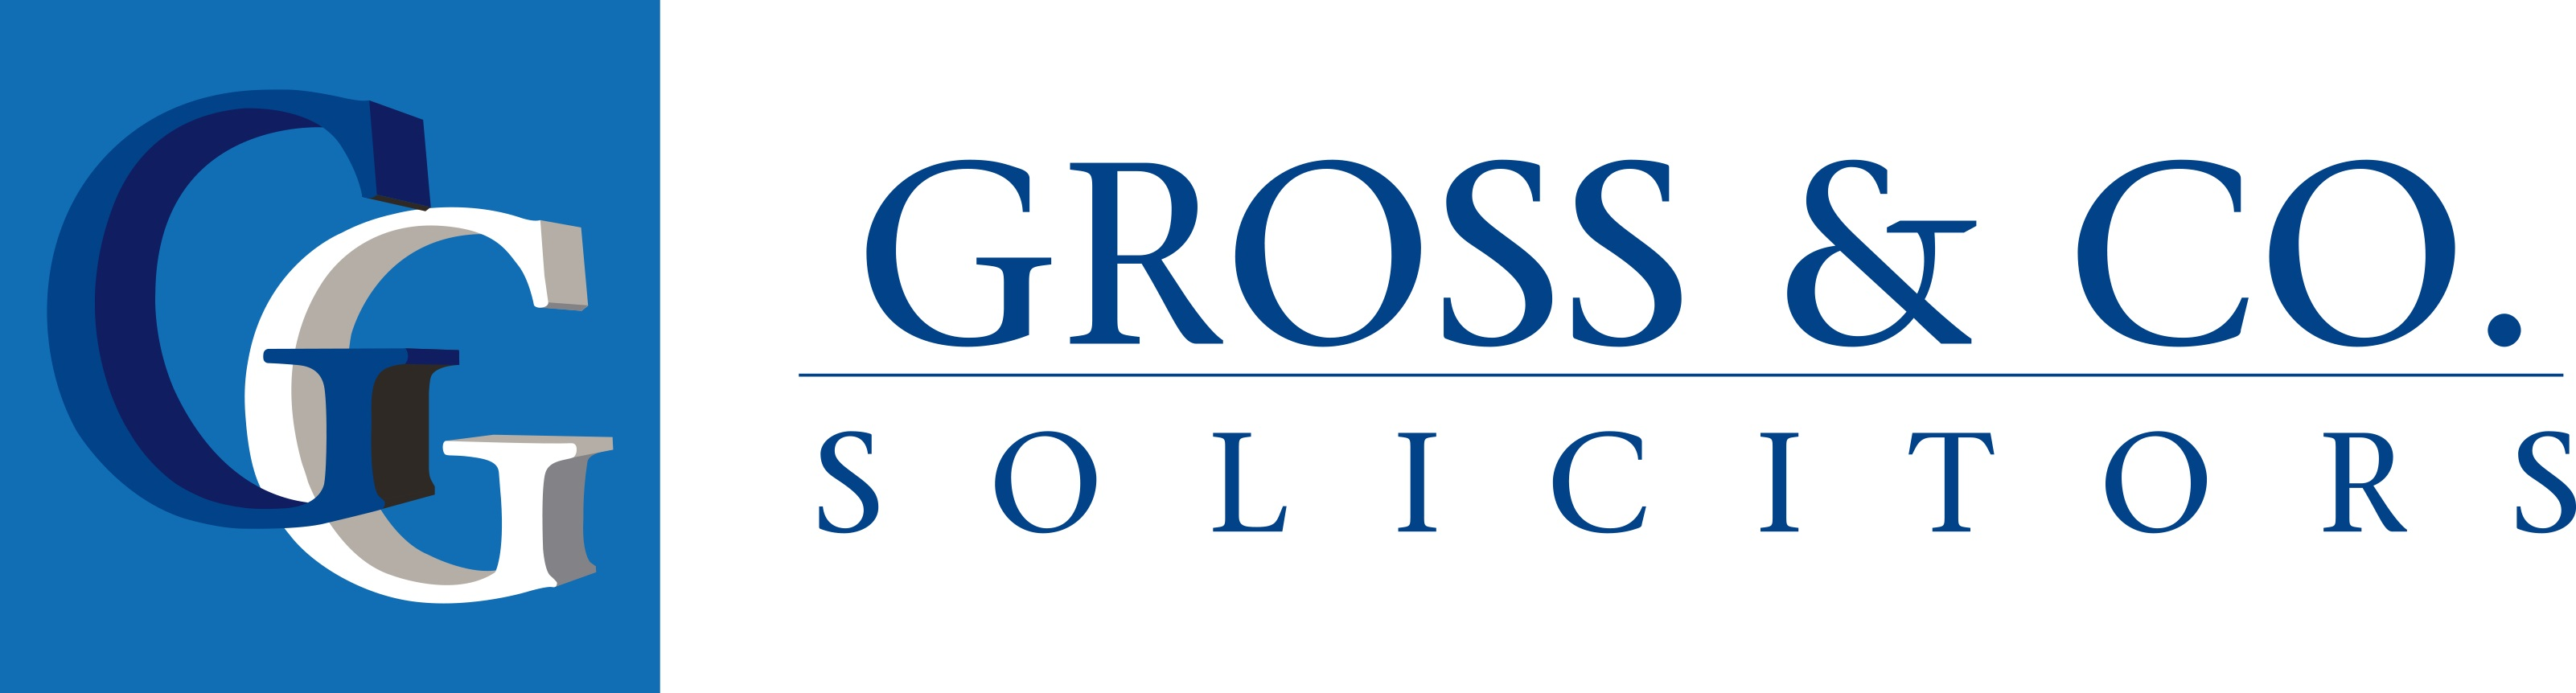 Gross & Co Solicitors